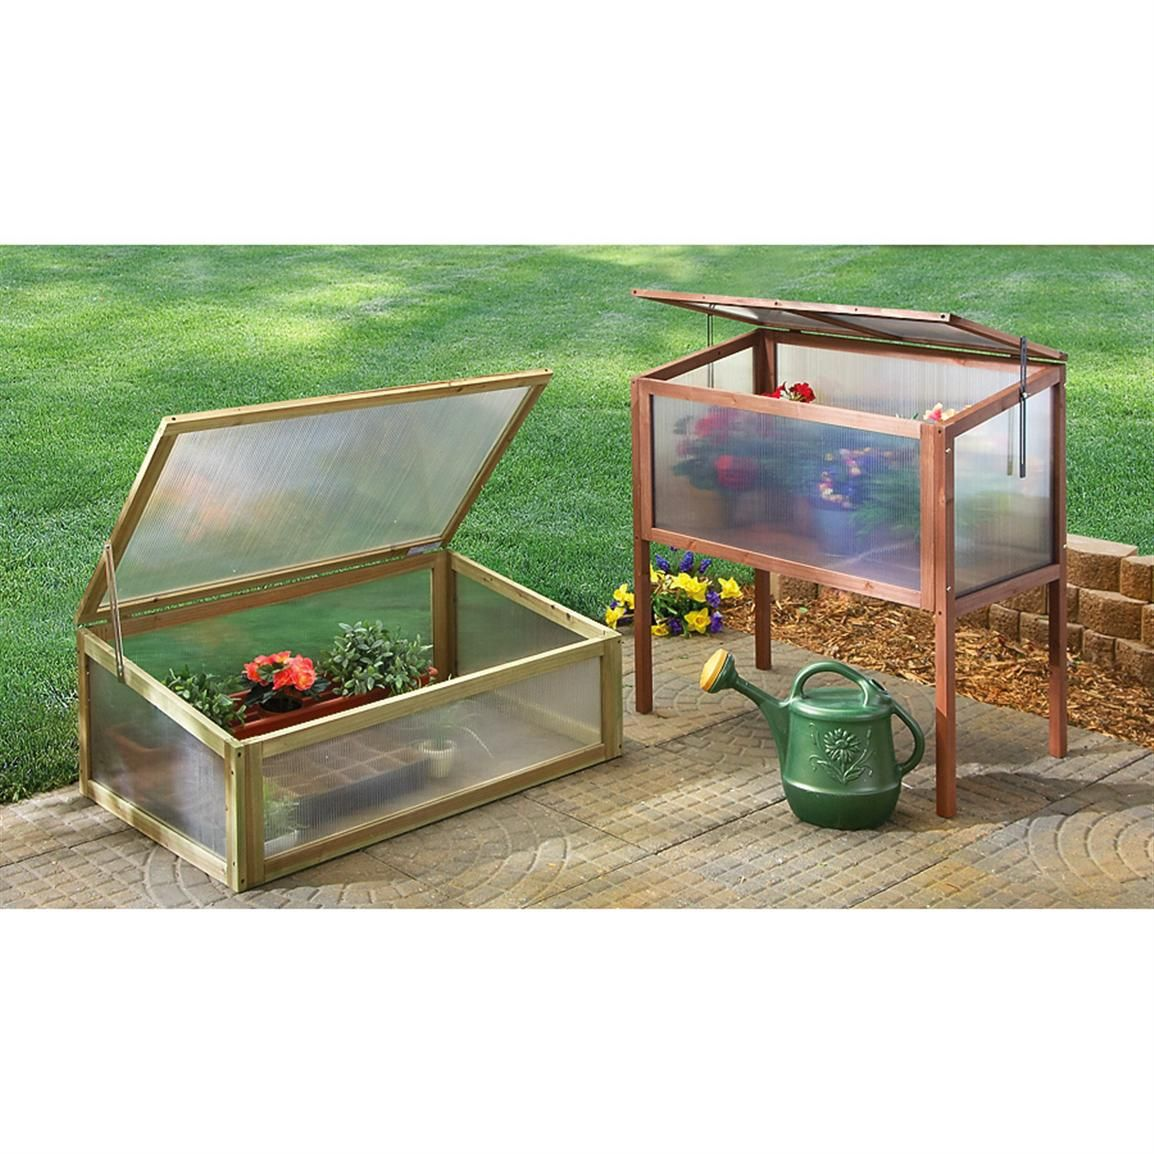 Guide Gear Raised Wooden Cold Frame Greenhouse Cold Frame Greenhouse Cold Frame Greenhouse Plans